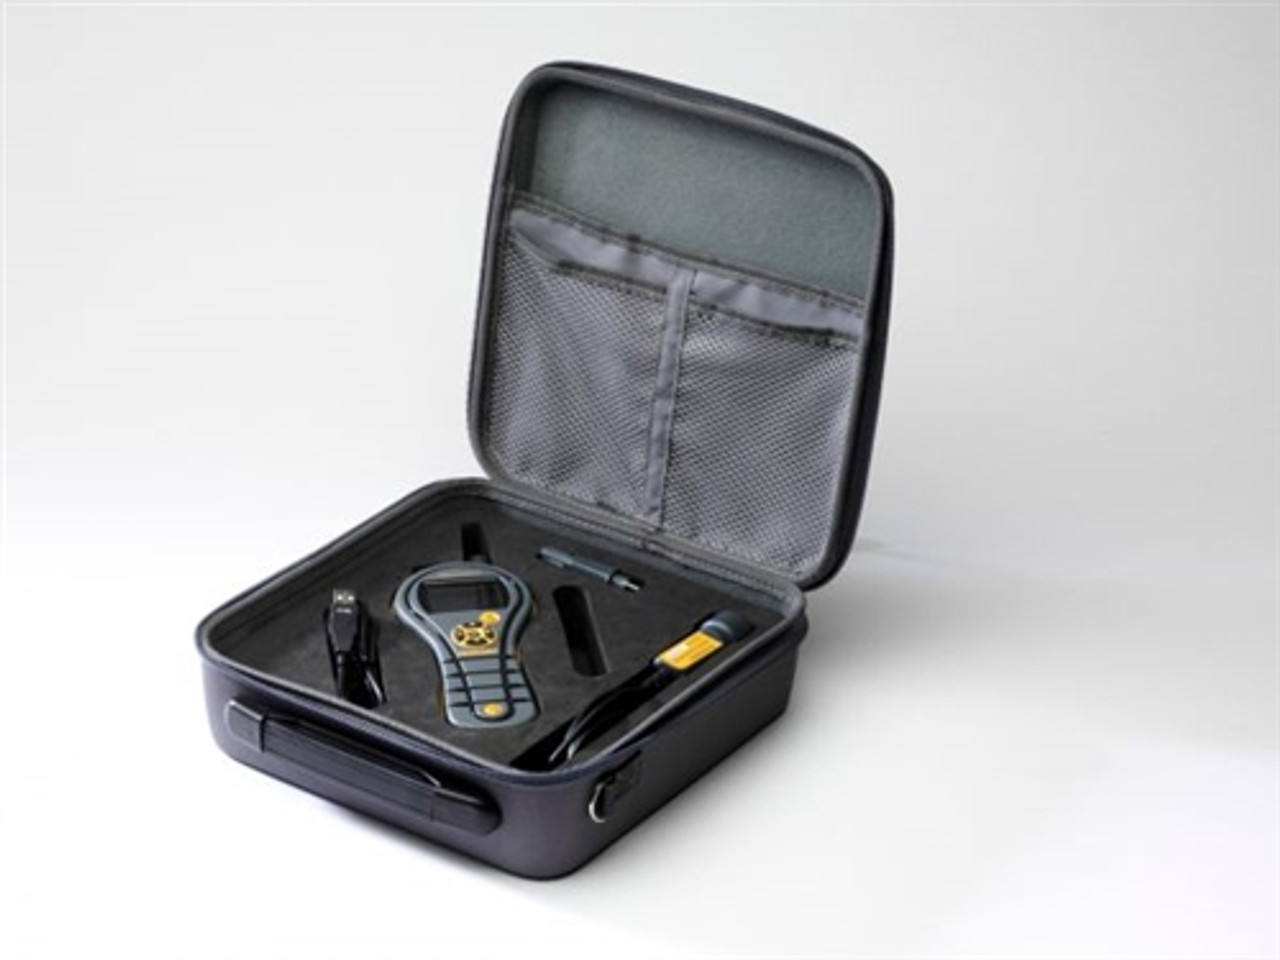 Protimeter Hygromaster2 with short QuikStick and Carry Case - BLD7751